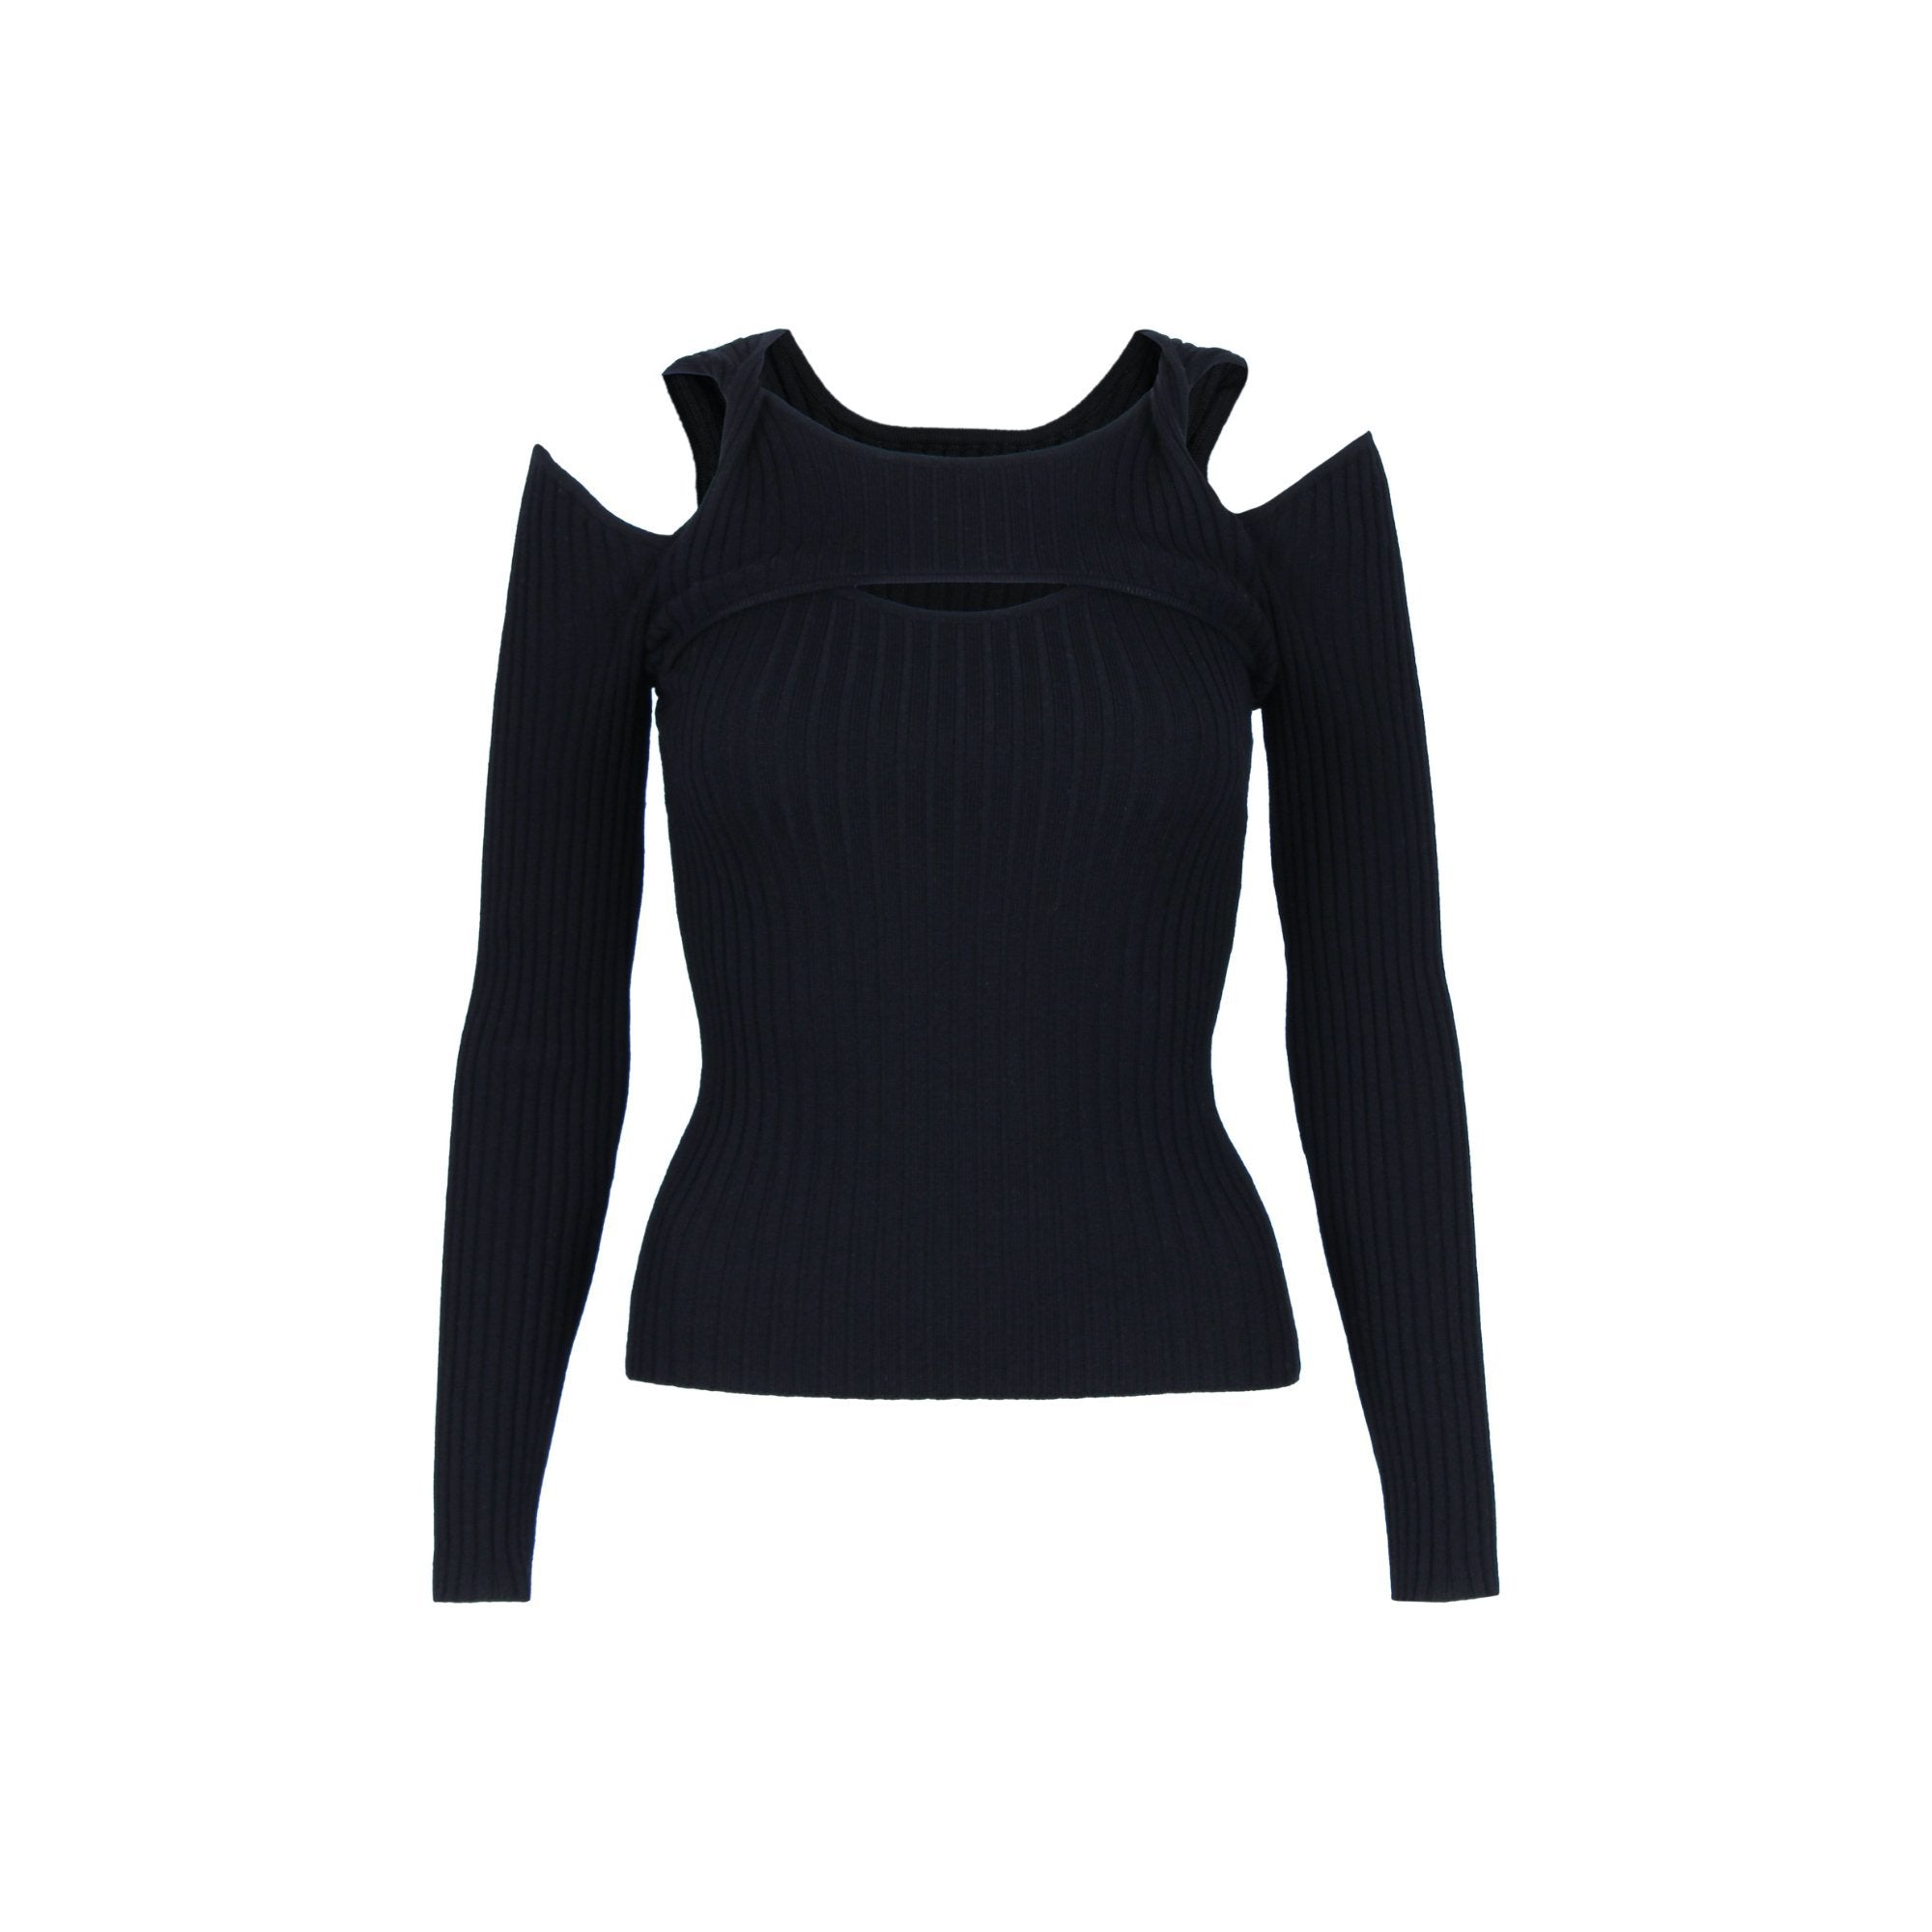 CALVIN LUO Twisted Shoulder Knitted Top Black | MADA IN CHINA